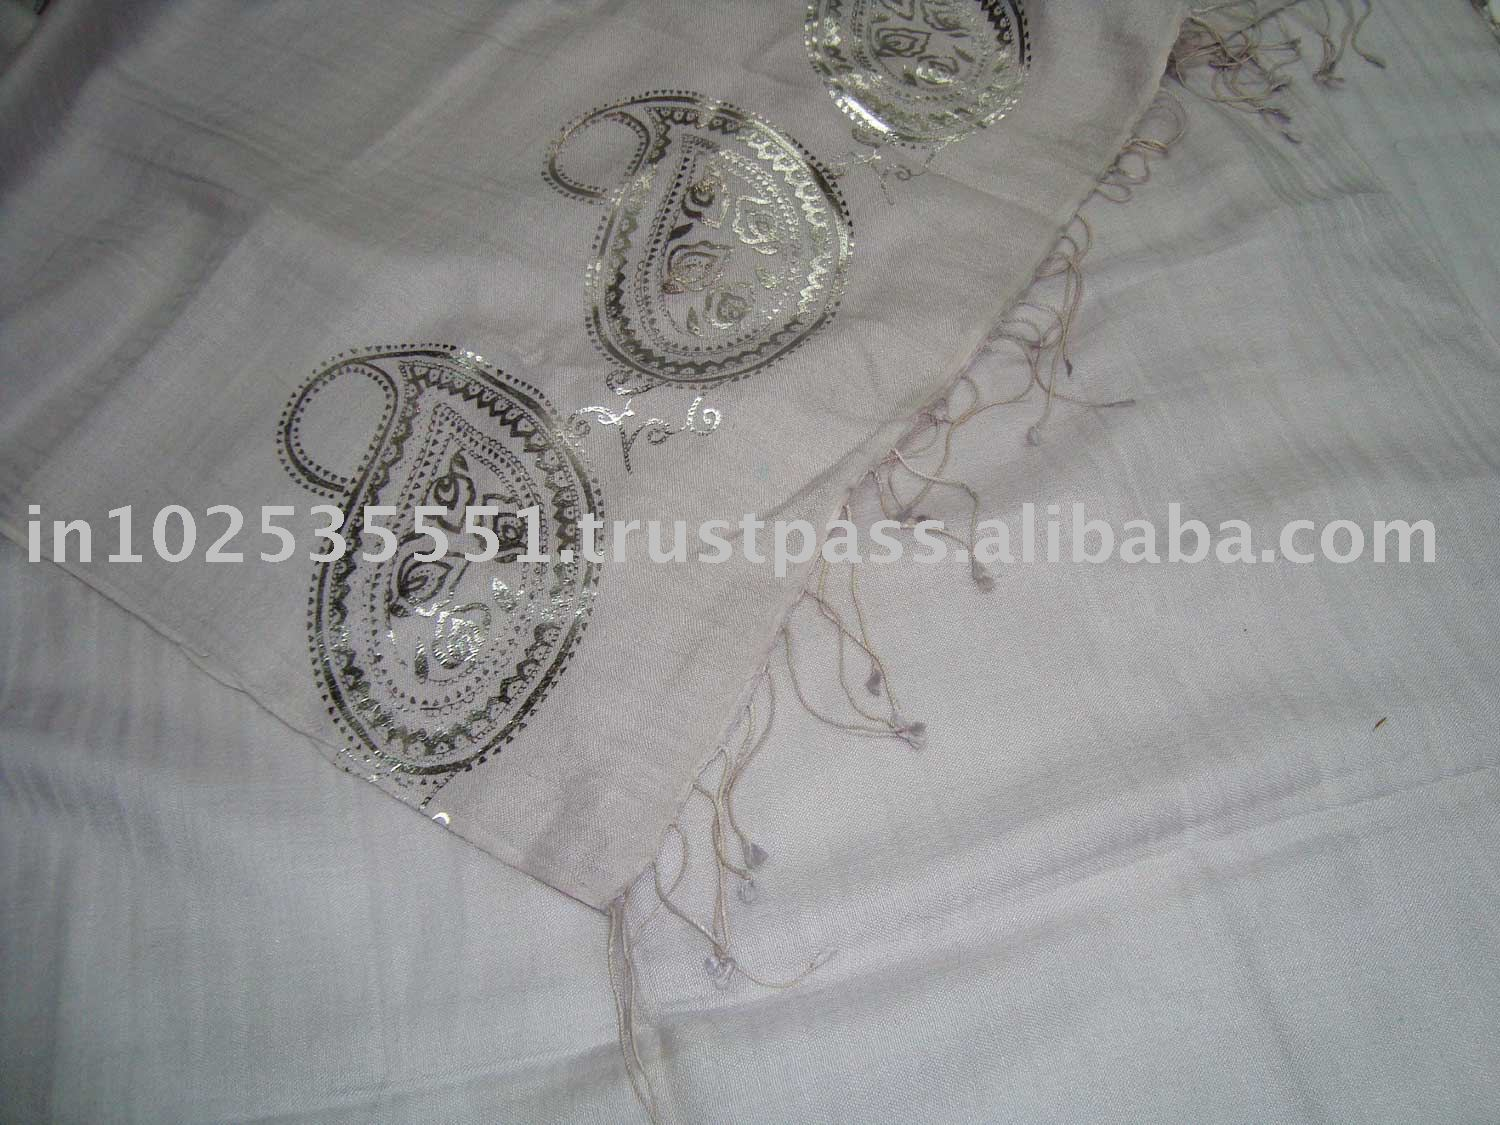 Pashmina Scarves with silver/gold foil print